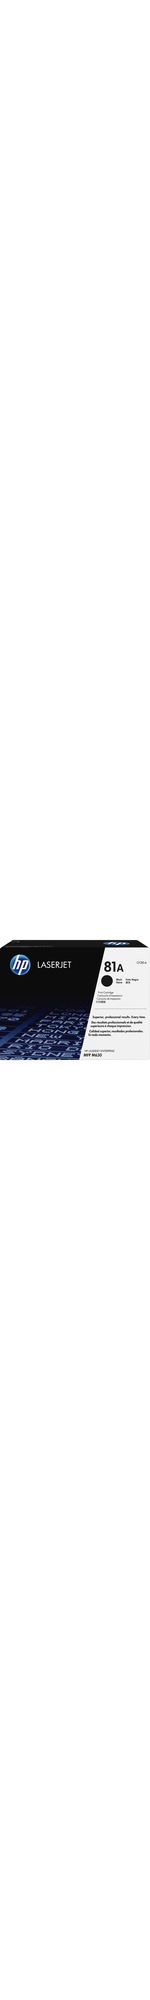 HP 81A Toner Cartridge - Black